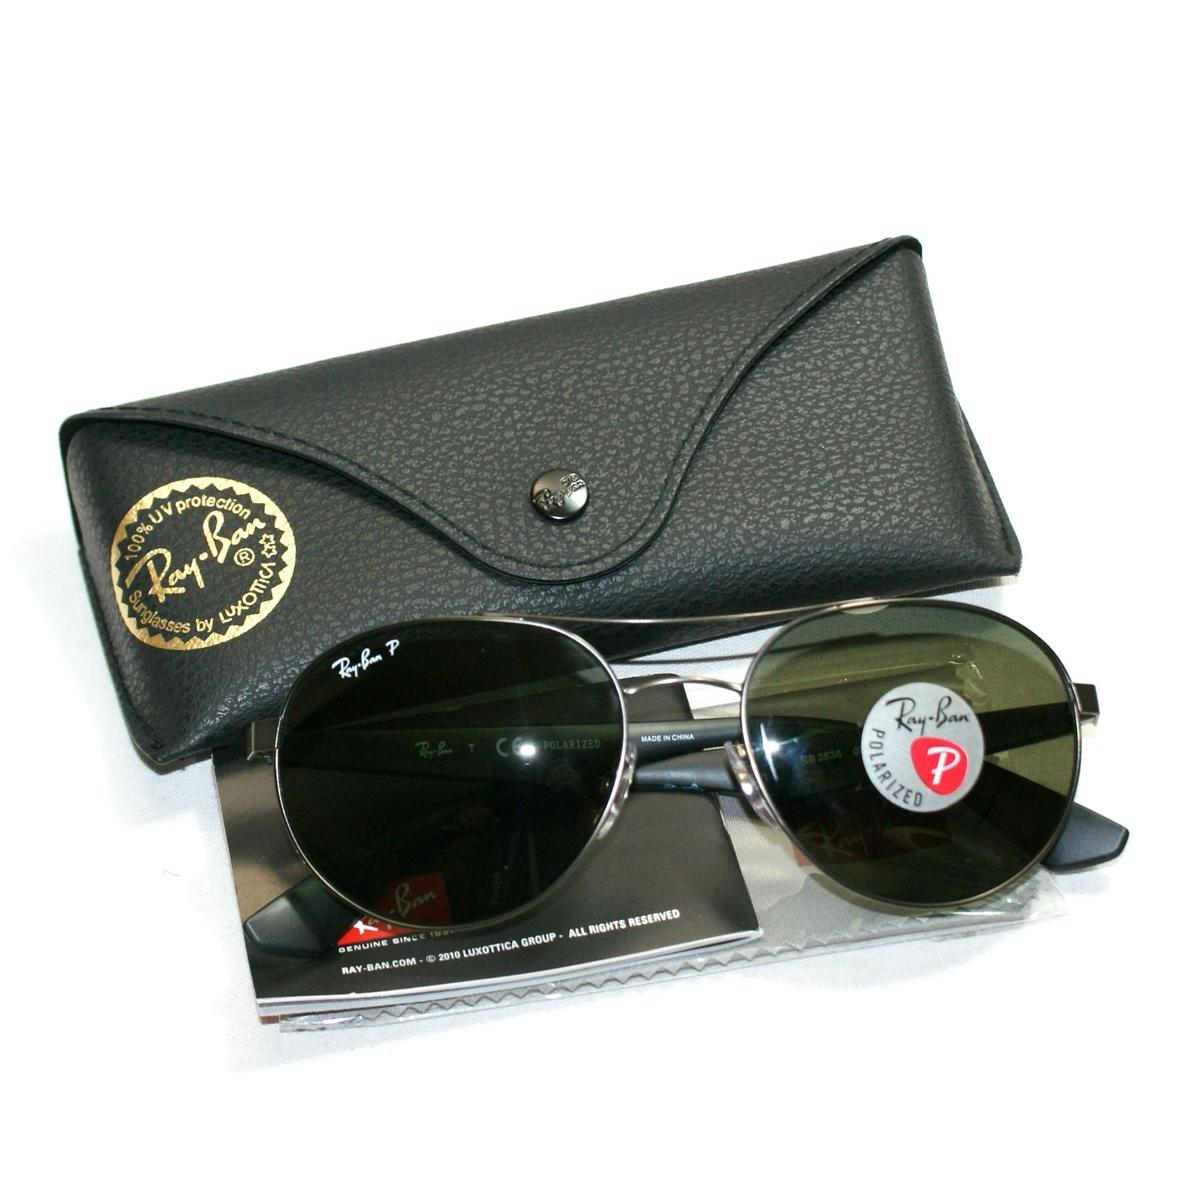 bf9525feeaa Home · Ray Ban · Metal Gunmetal Sunglasses Polarized. CLICK THUMBNAIL TO  ZOOM. Found ...